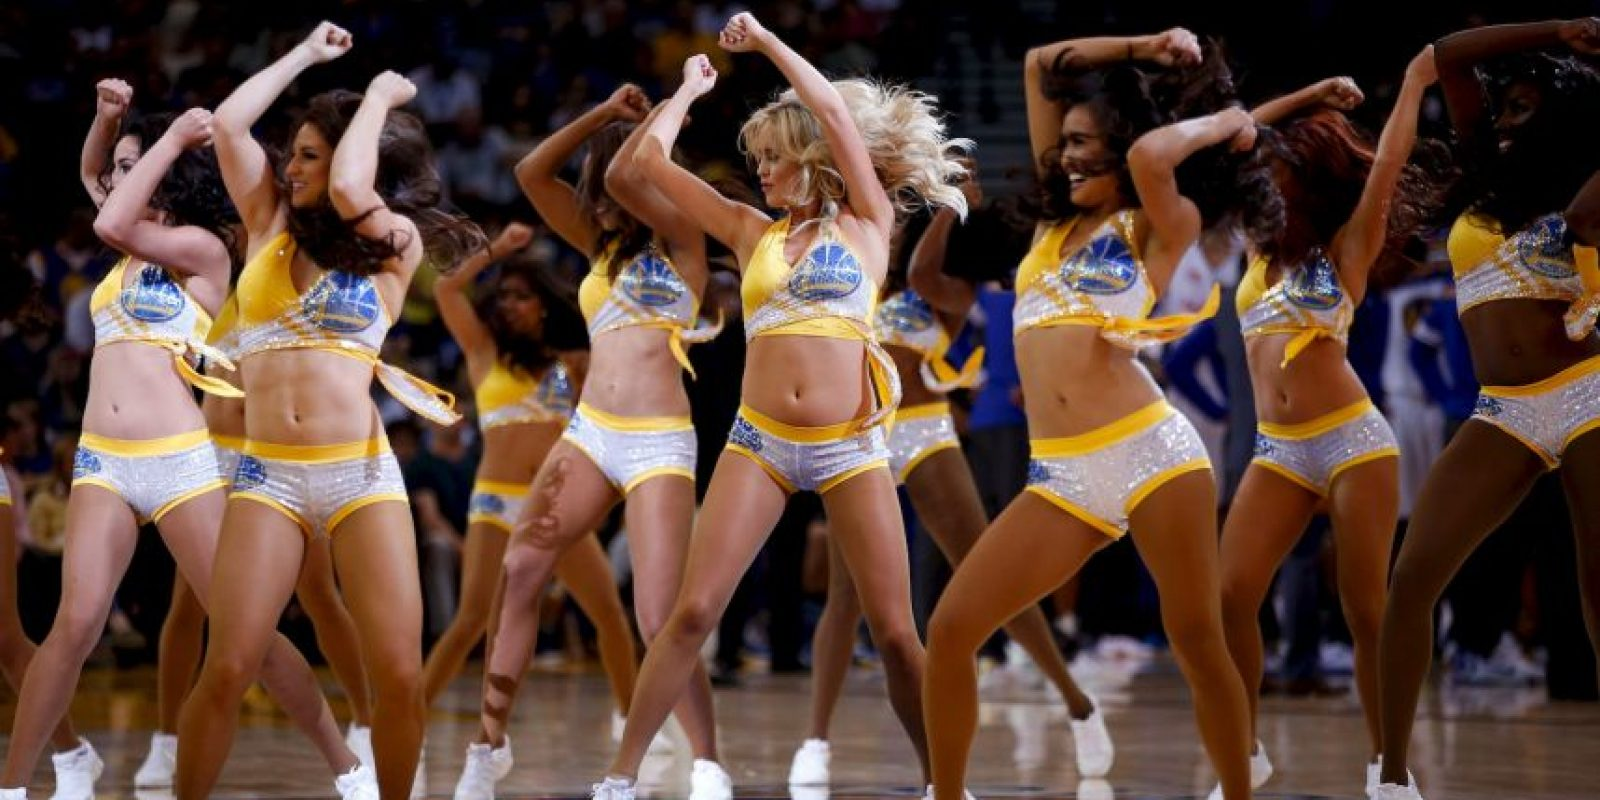 7. Las impresionantes cheerleaders que engalanan las duelas Foto: Getty images